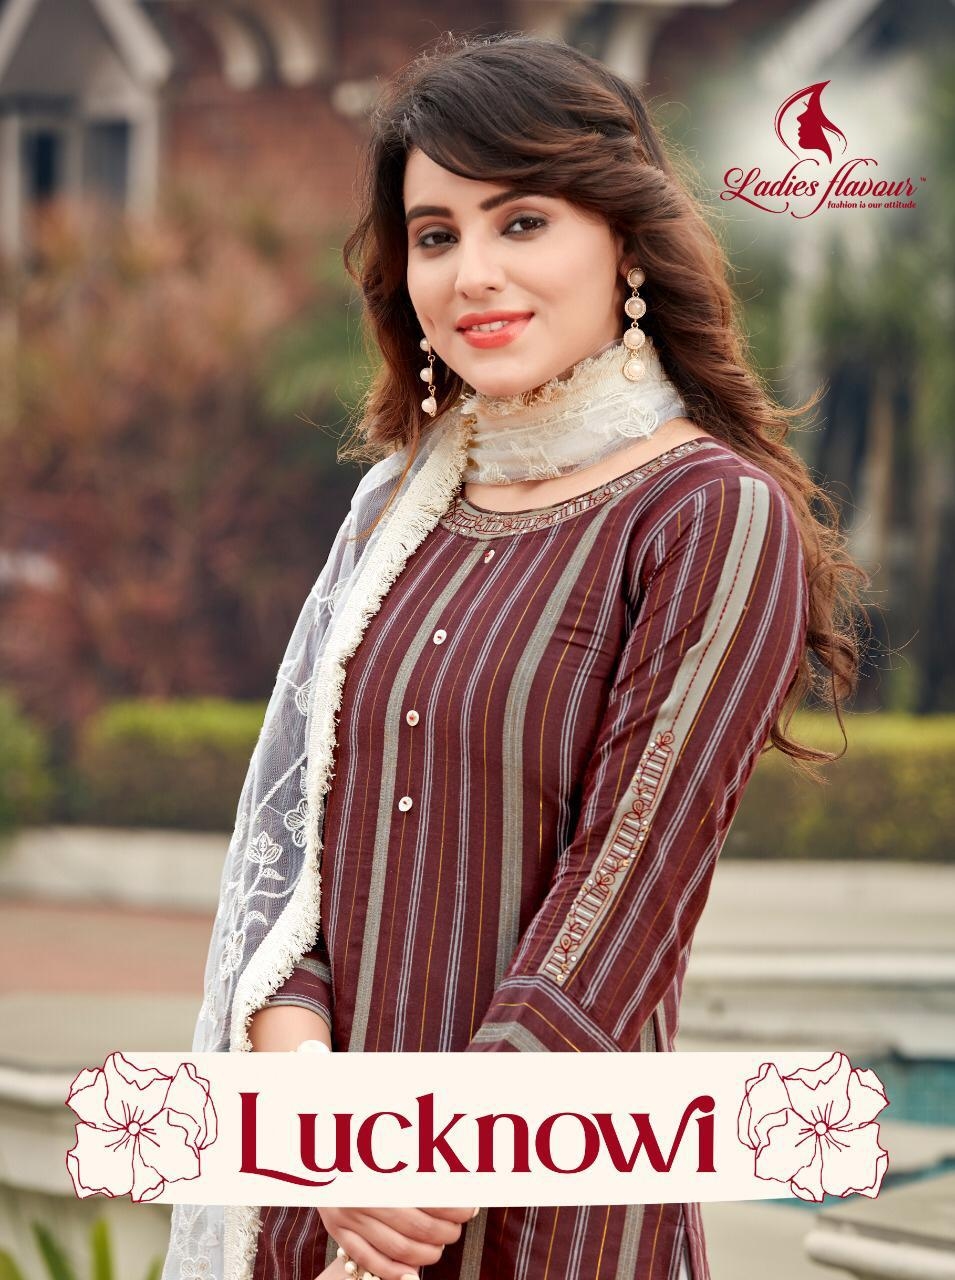 Ladies Flavour Lucknowi Designer Stitch Rayon Lurex Embroidery Work Kurti With Rayon Embroidery Work Bottom And Lucknowi Dupatta